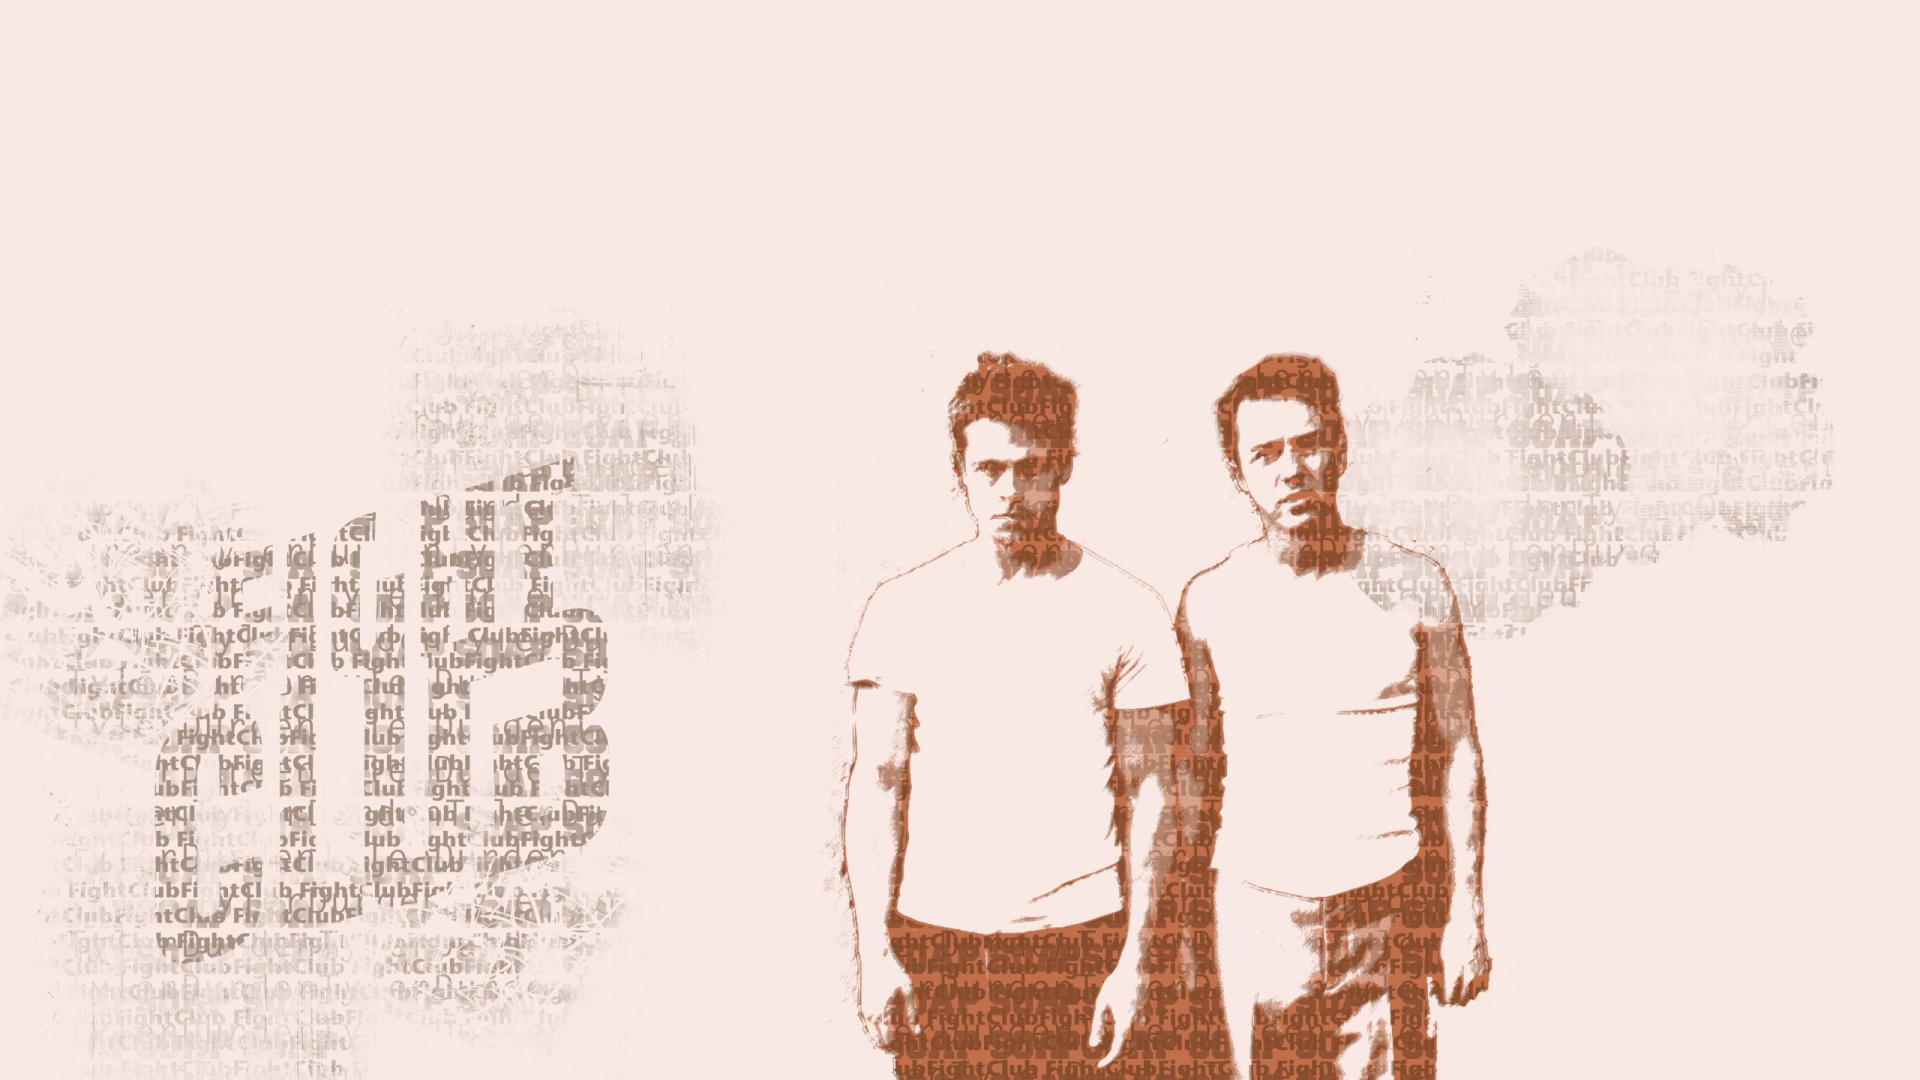 <b>Fight Club</b> wallpaper - Free Desktop HD iPad iPhone wallpapers